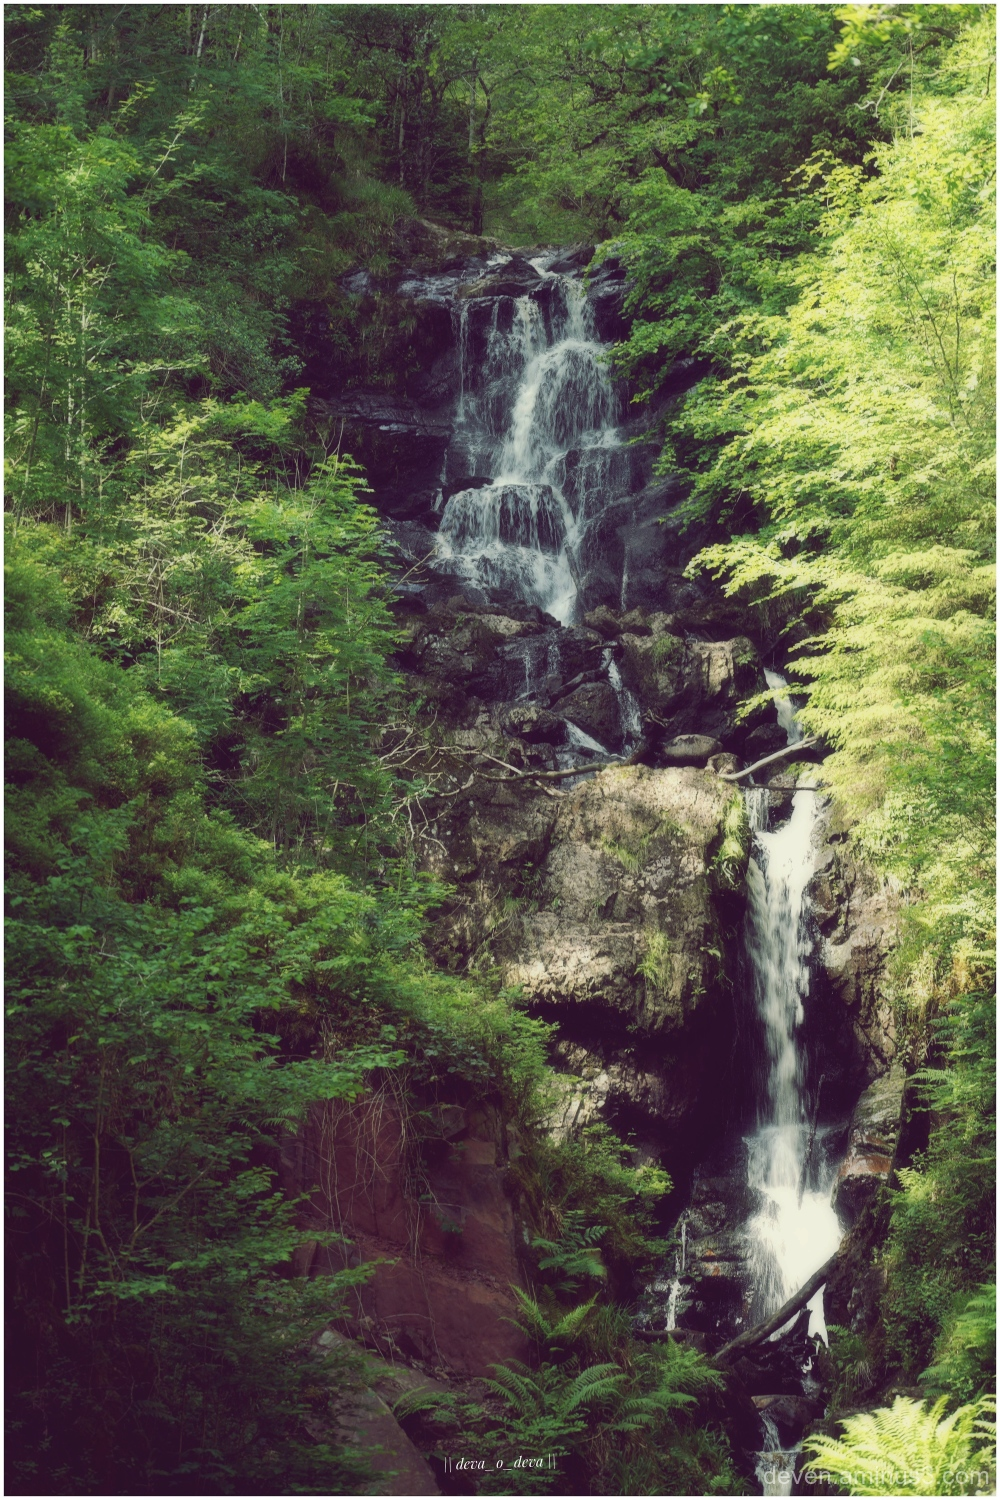 Waterfall in Queen Elizabeth Forest Park